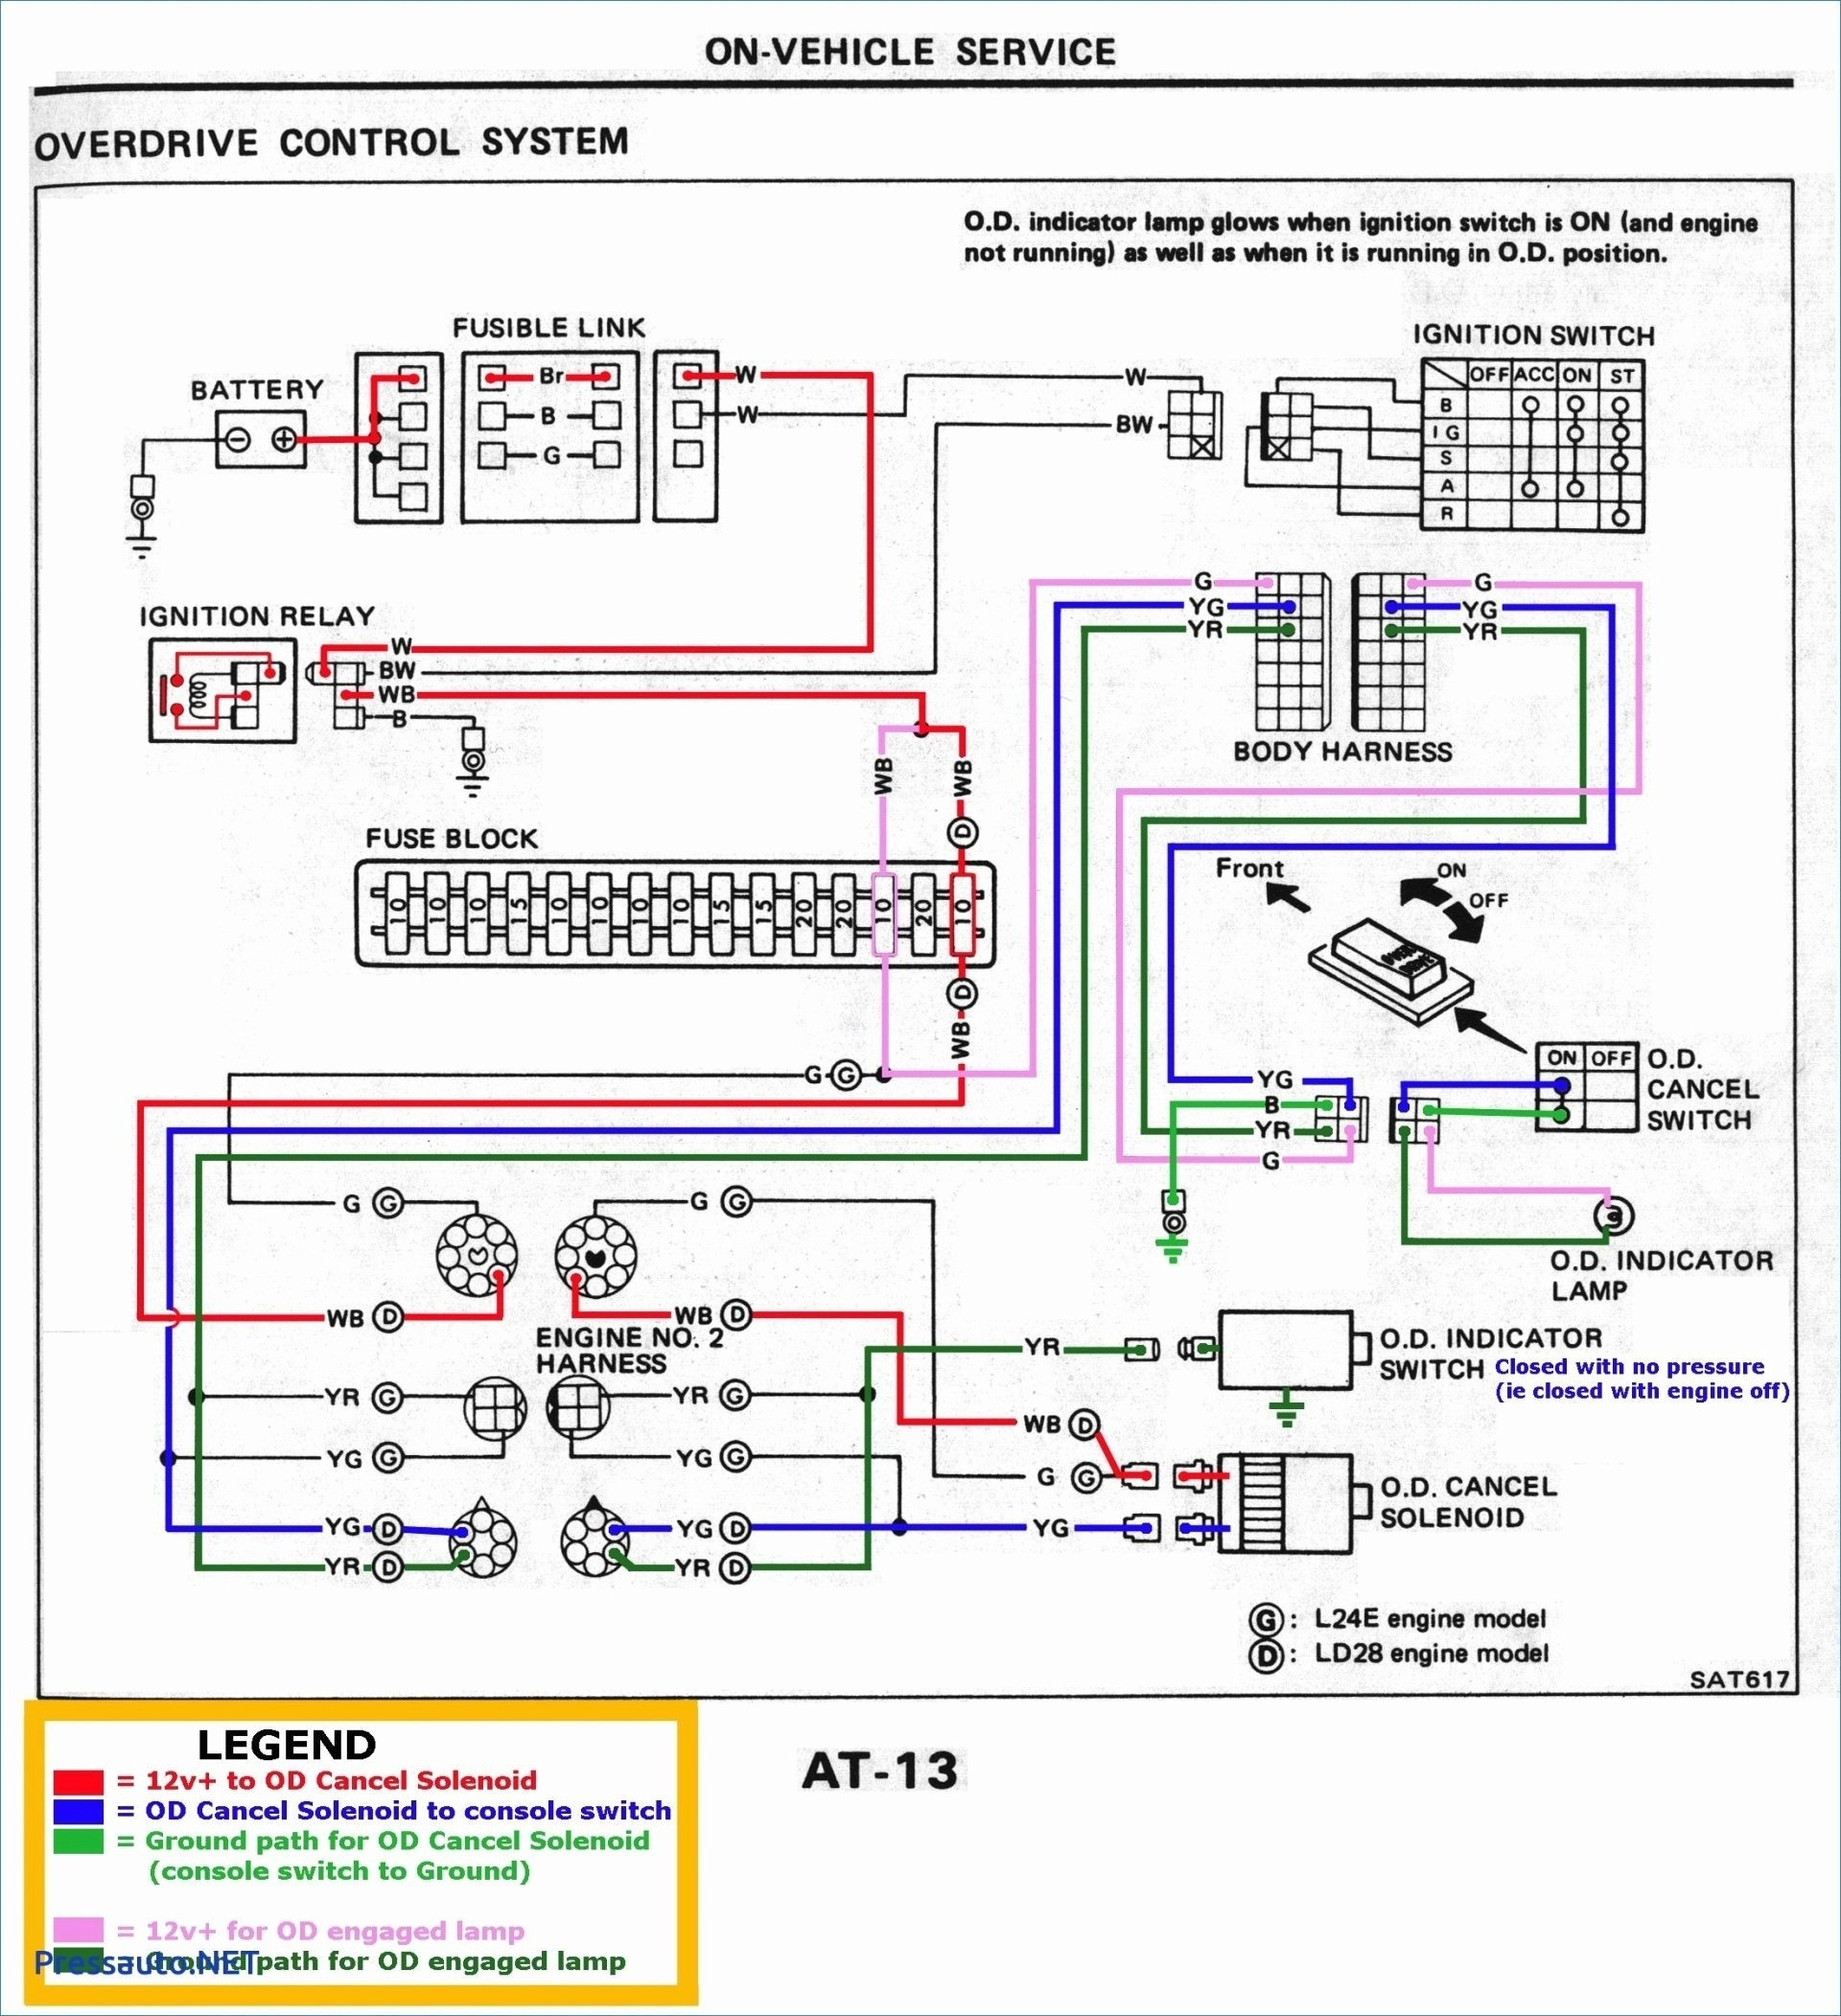 hight resolution of denso 1420 alternator 3 wire diagram wiring library denso oxygen sensor wiring diagram bplug denso wiring diagram